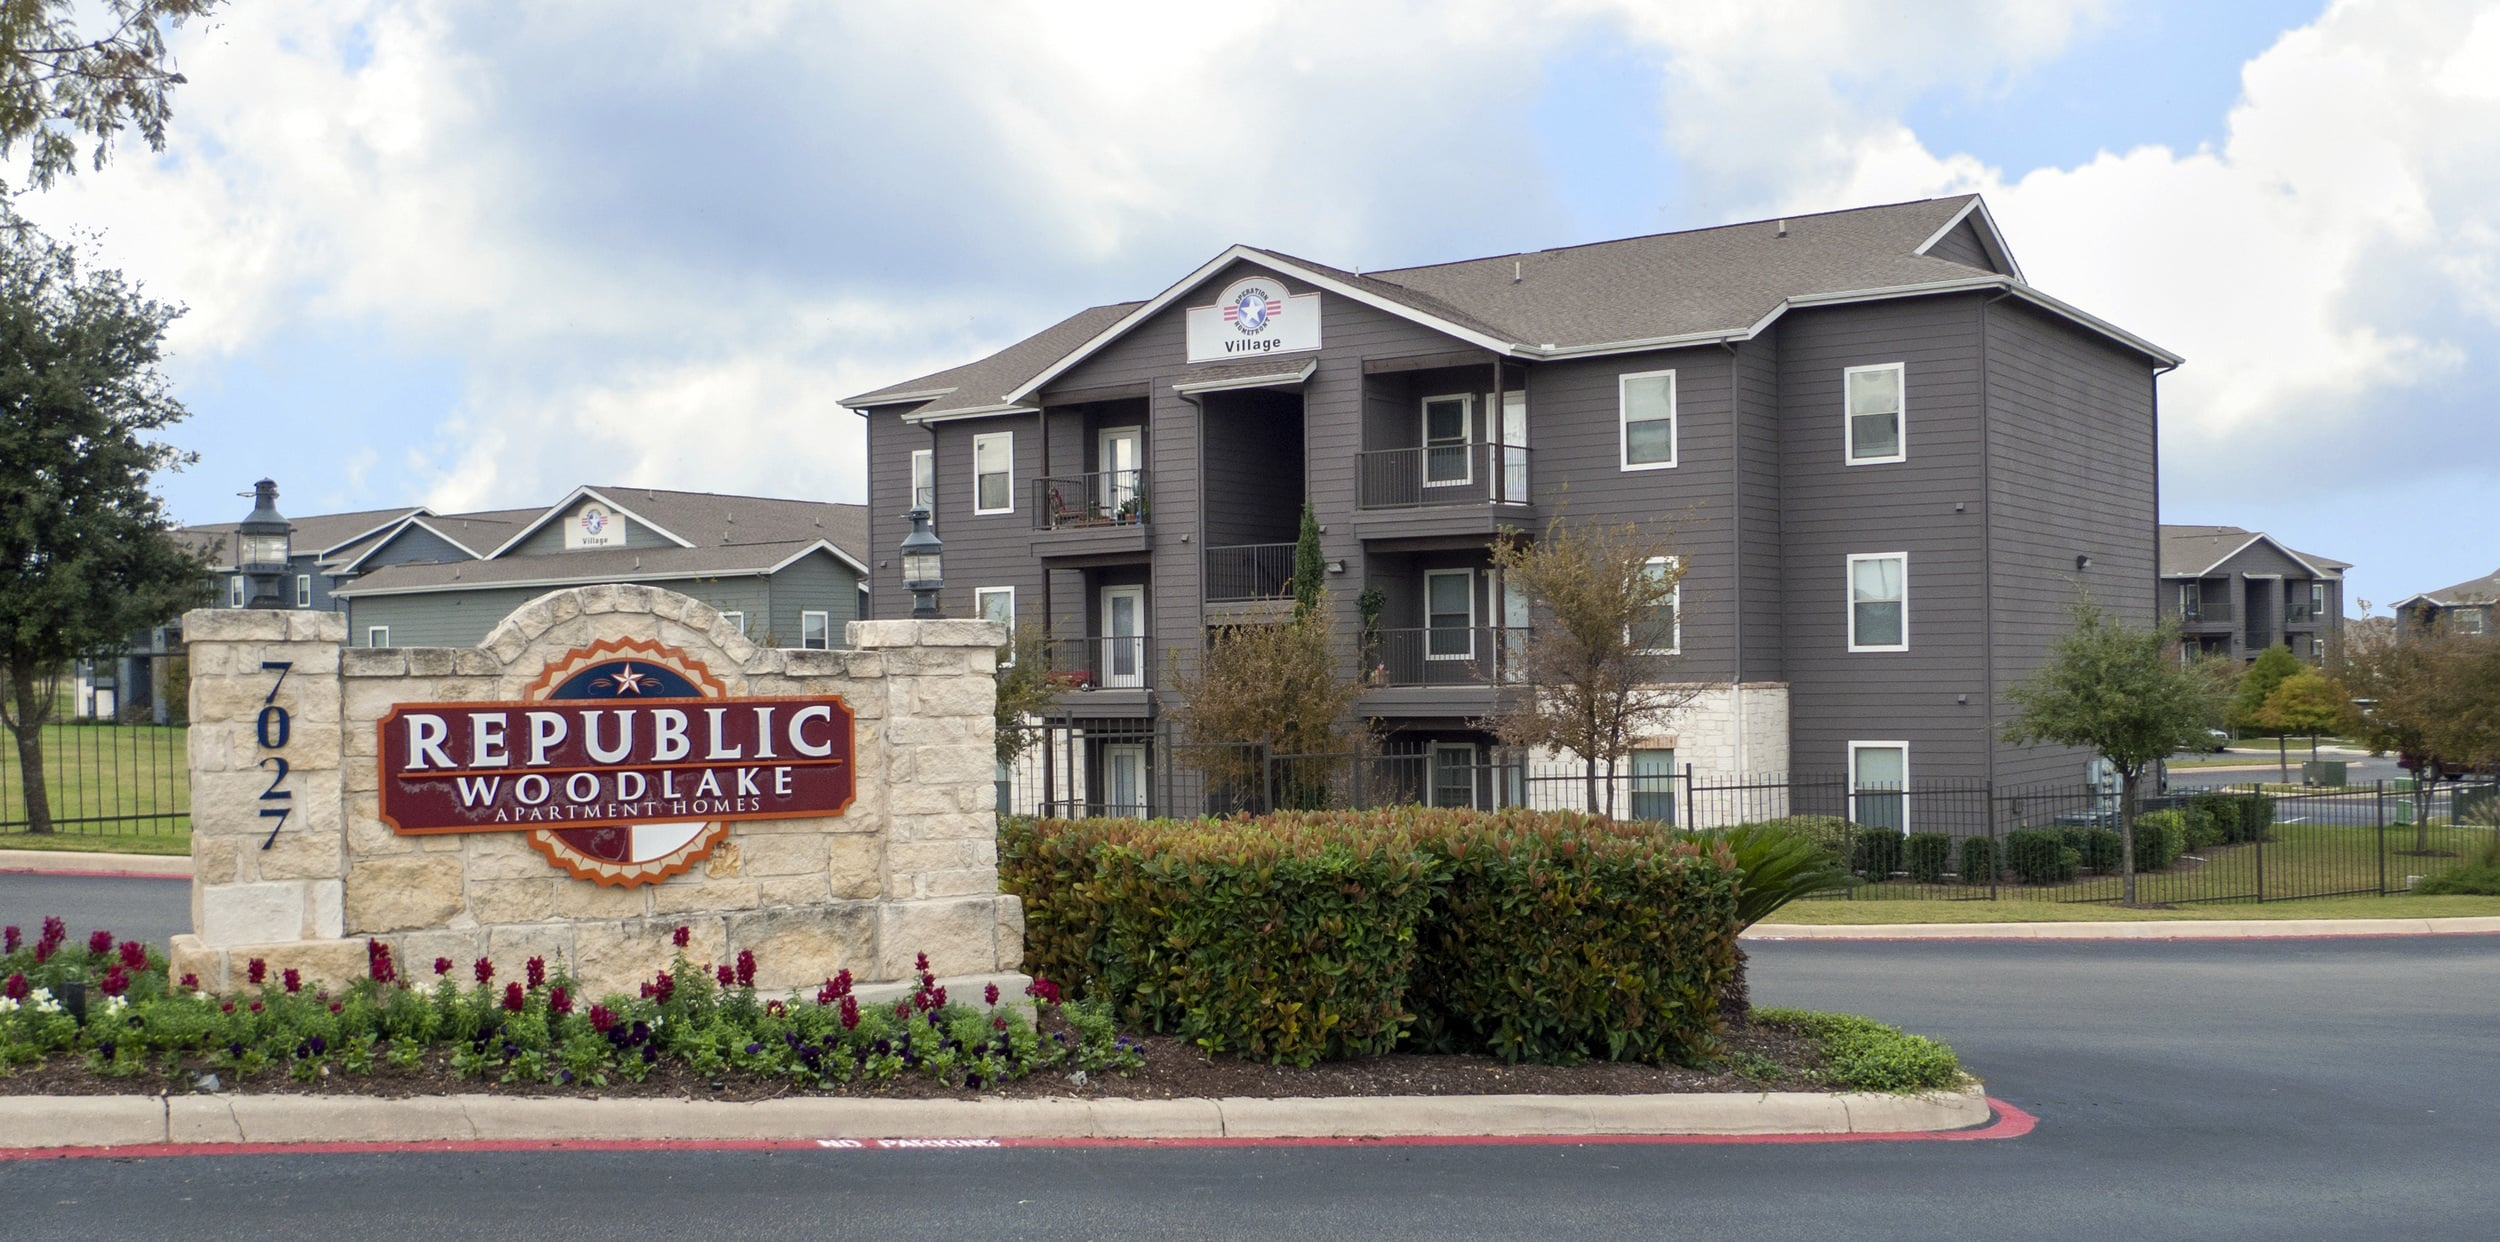 one in apartments antonio cheap carlyle place tx bedroom san tour apartment watch langley